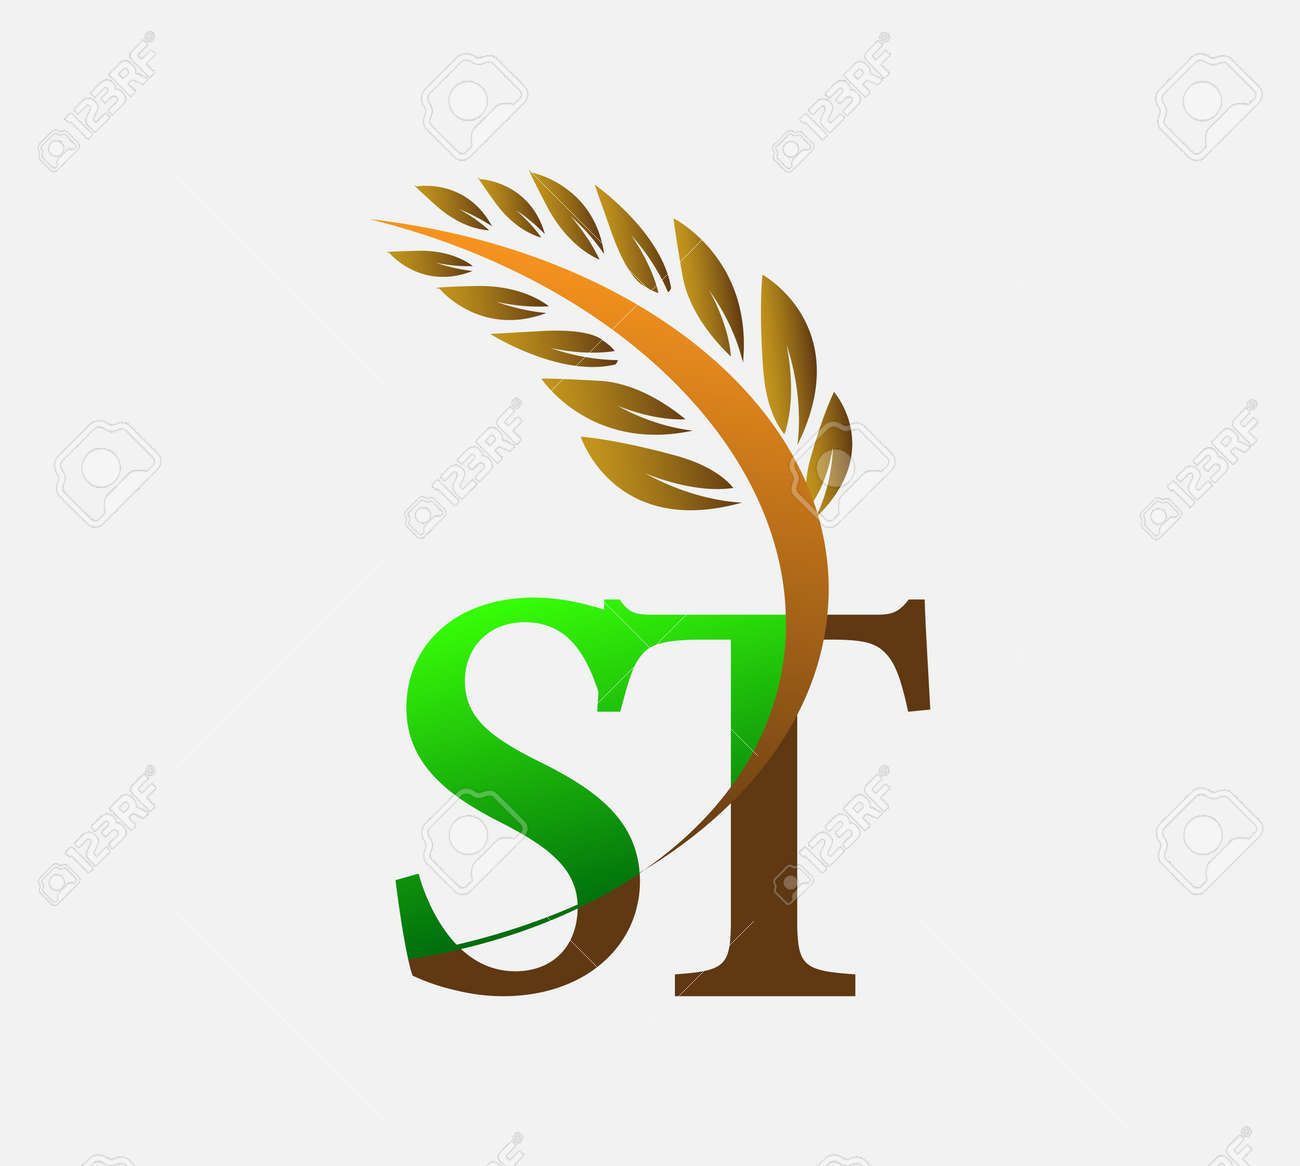 initial letter ST, Agriculture wheat symbol Template vector icon design colored green and brown. - 158763721